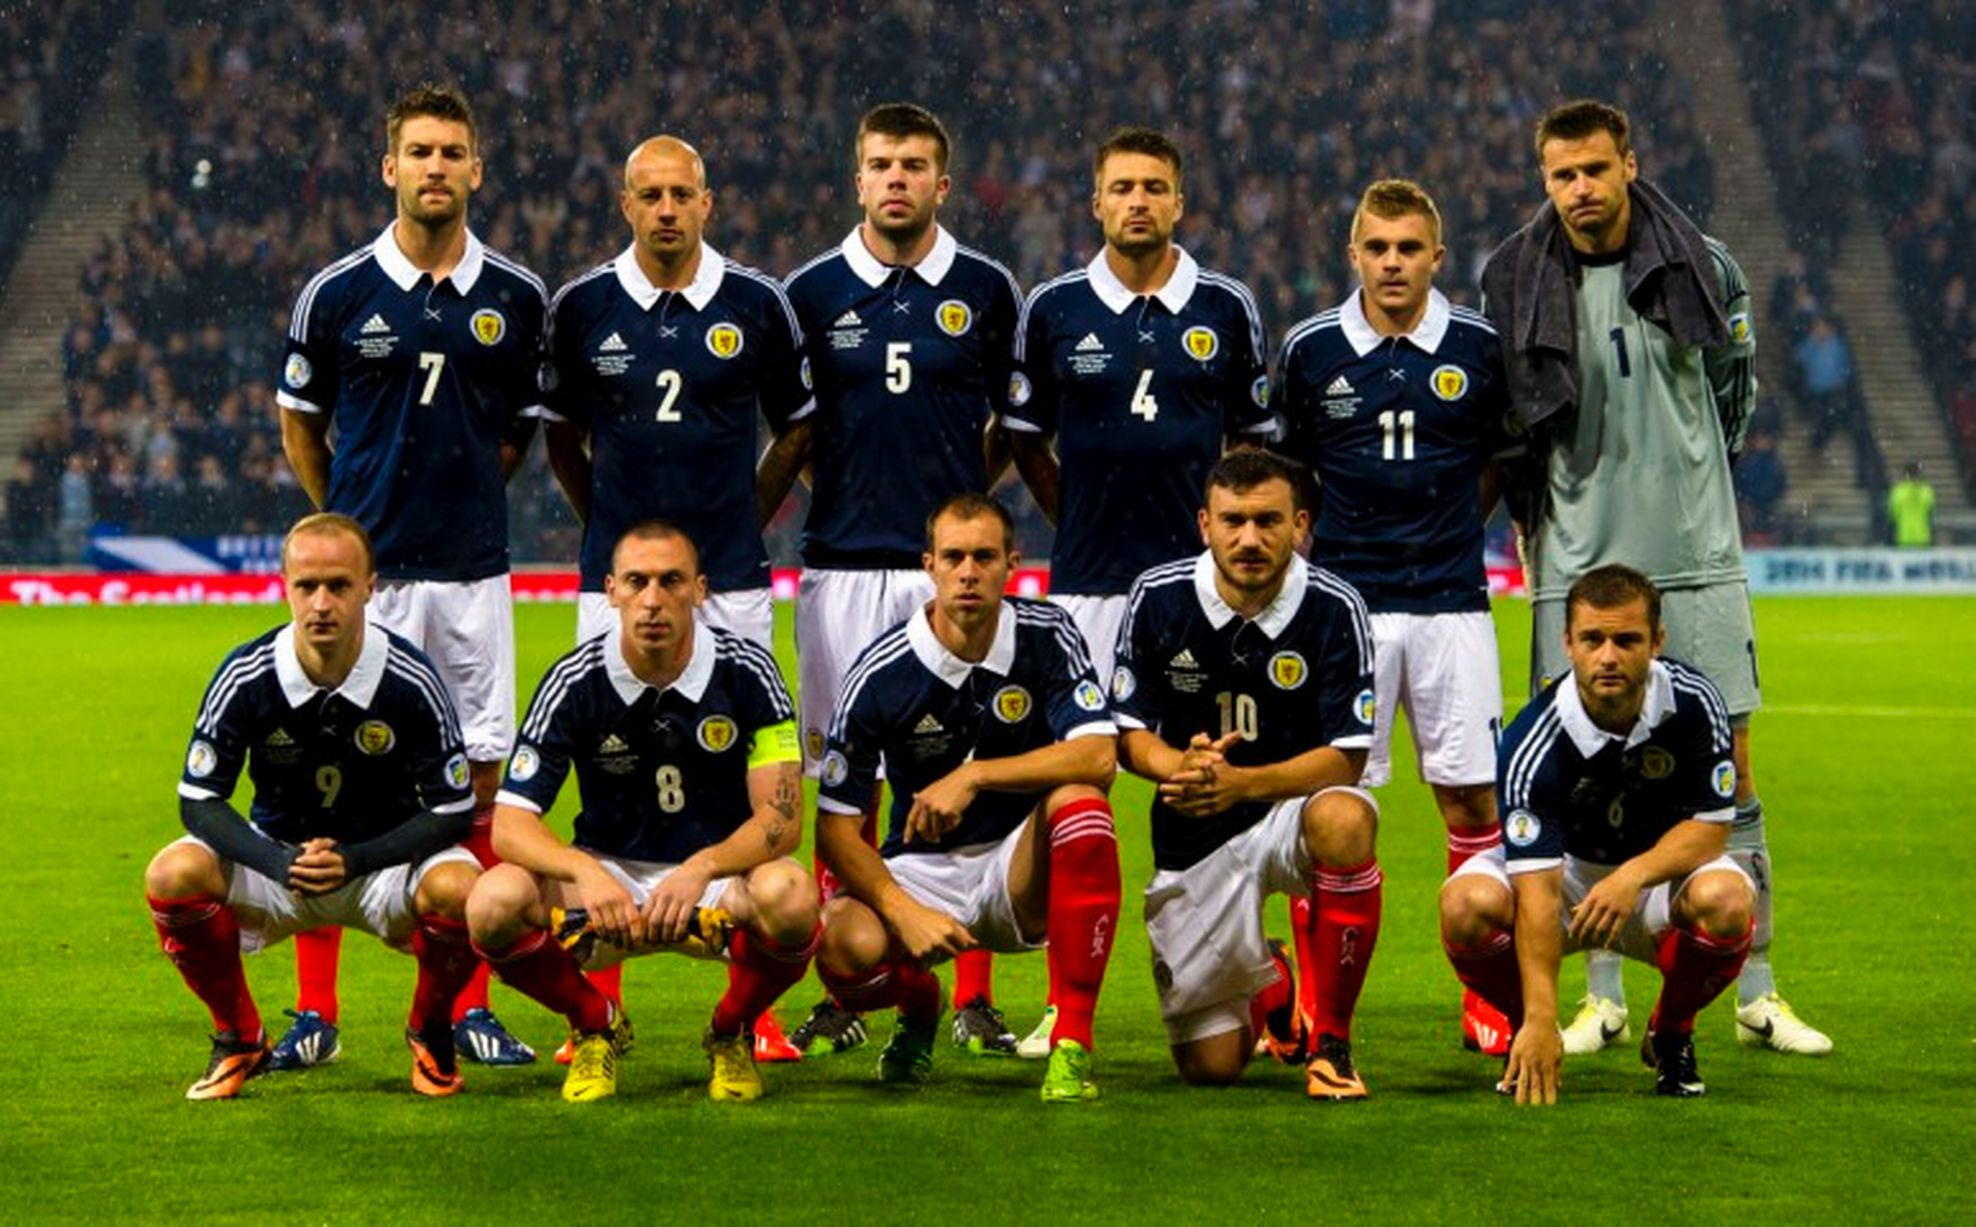 Scotland VS Canada  BETTING TIPS (22-03-2017)